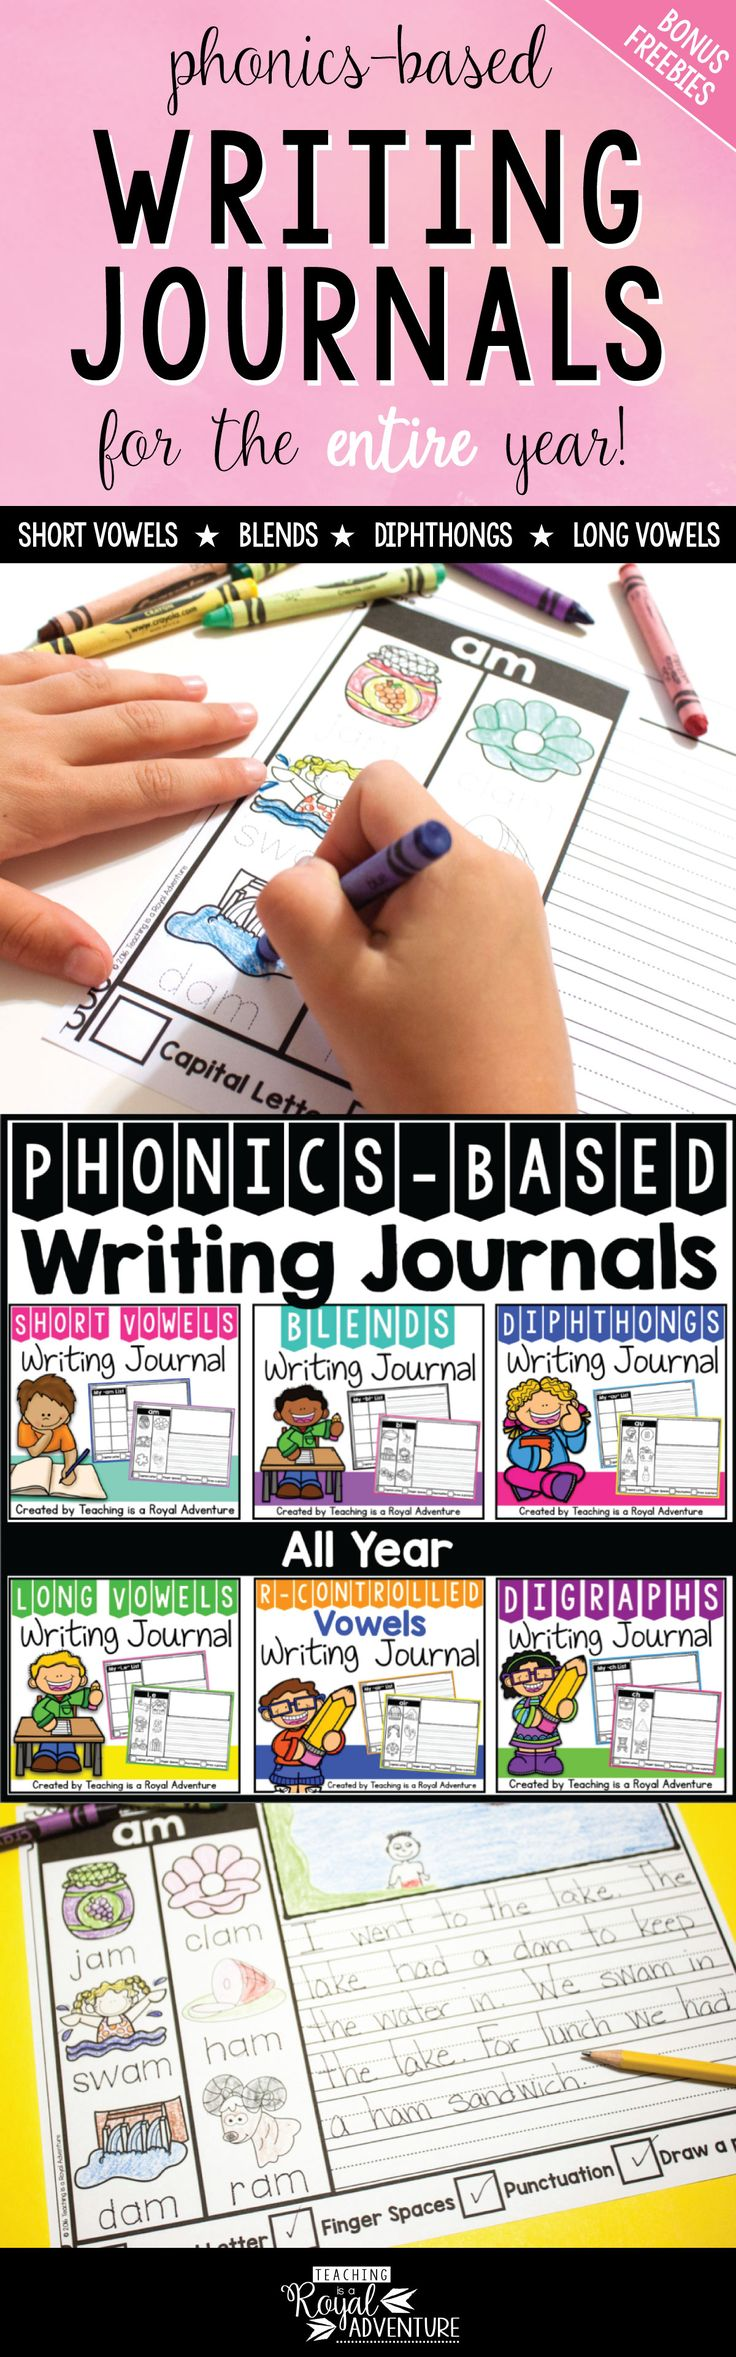 Phonics-based writing journal for the entire year. What is included? Phonics-Based Writing Journal Cover for each phonics skill. Additional paper included.